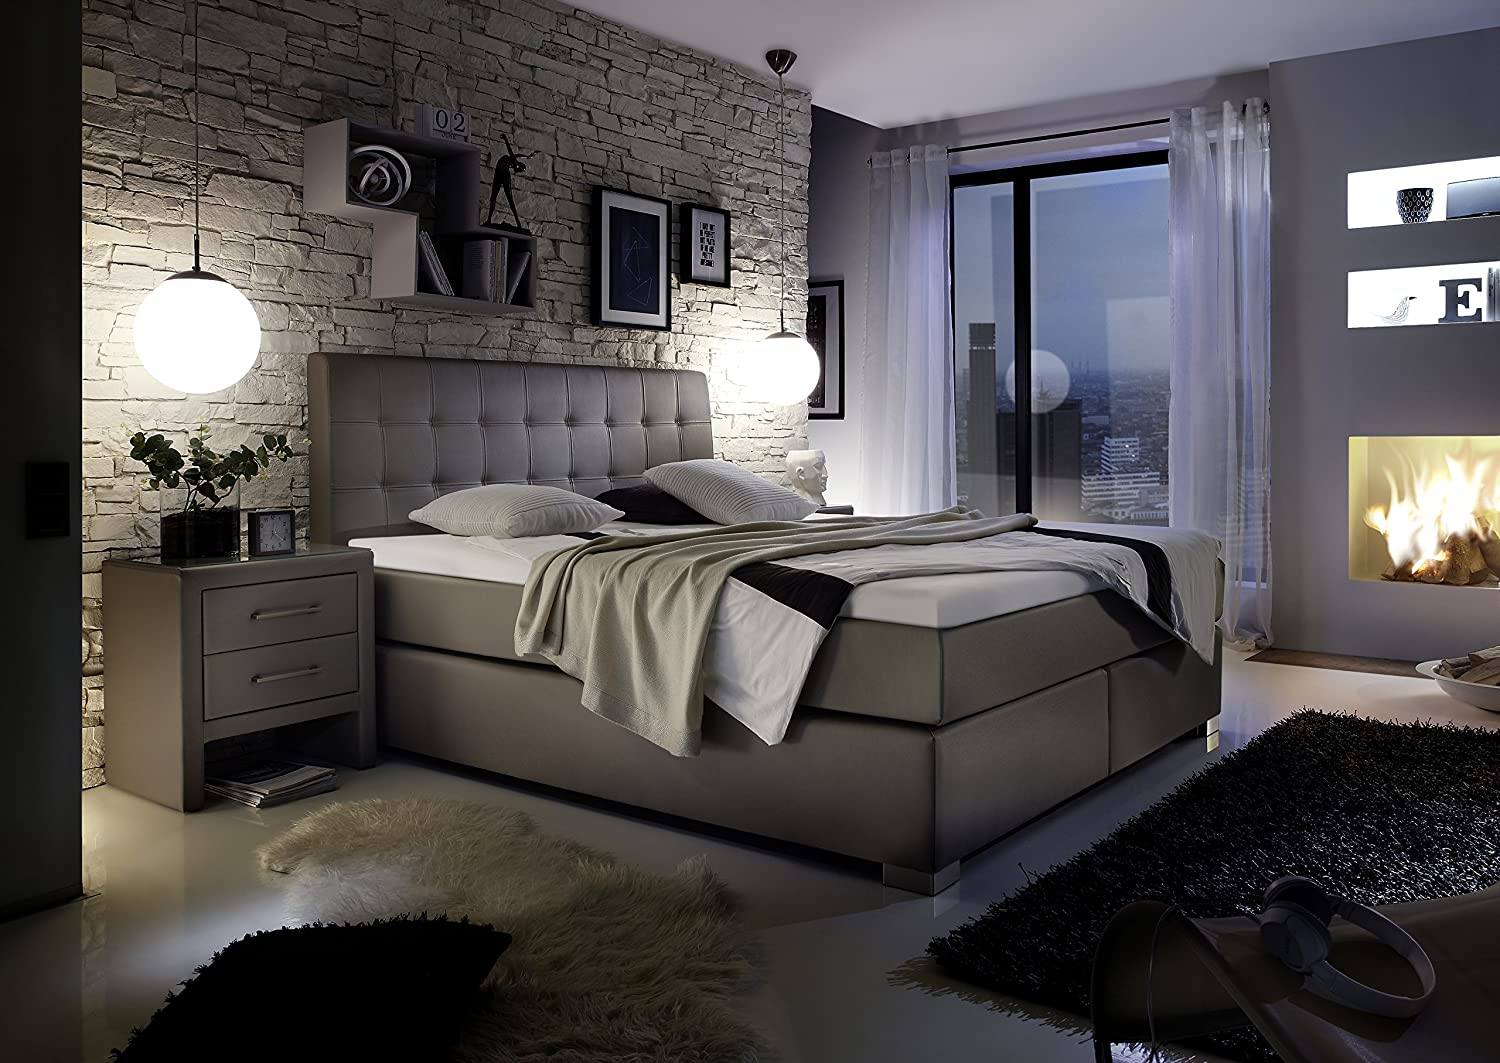 design boxspringbett hotelbett grau 200 x 200 cm h2 h2. Black Bedroom Furniture Sets. Home Design Ideas